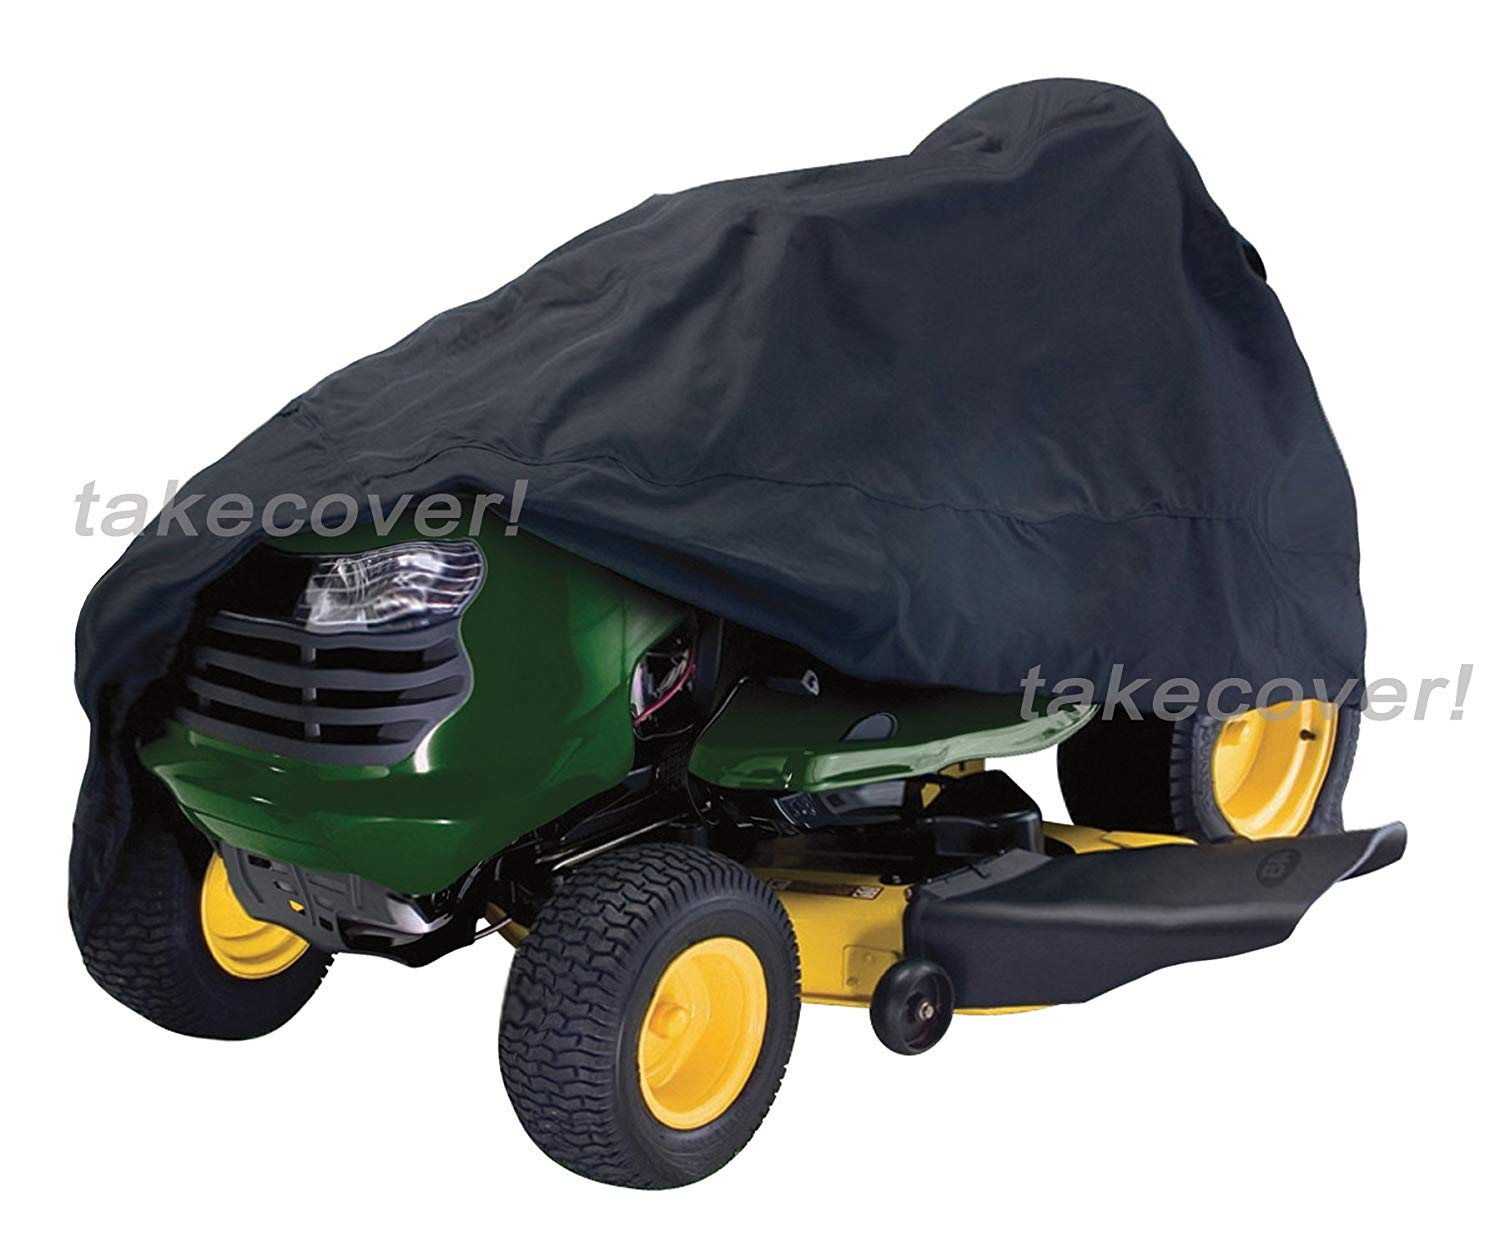 """Deluxe Riding Lawn Mower Tractor Cover Fits Decks up to 55"""" Black - Water Mildew & UV Resistant Storage Cover"""